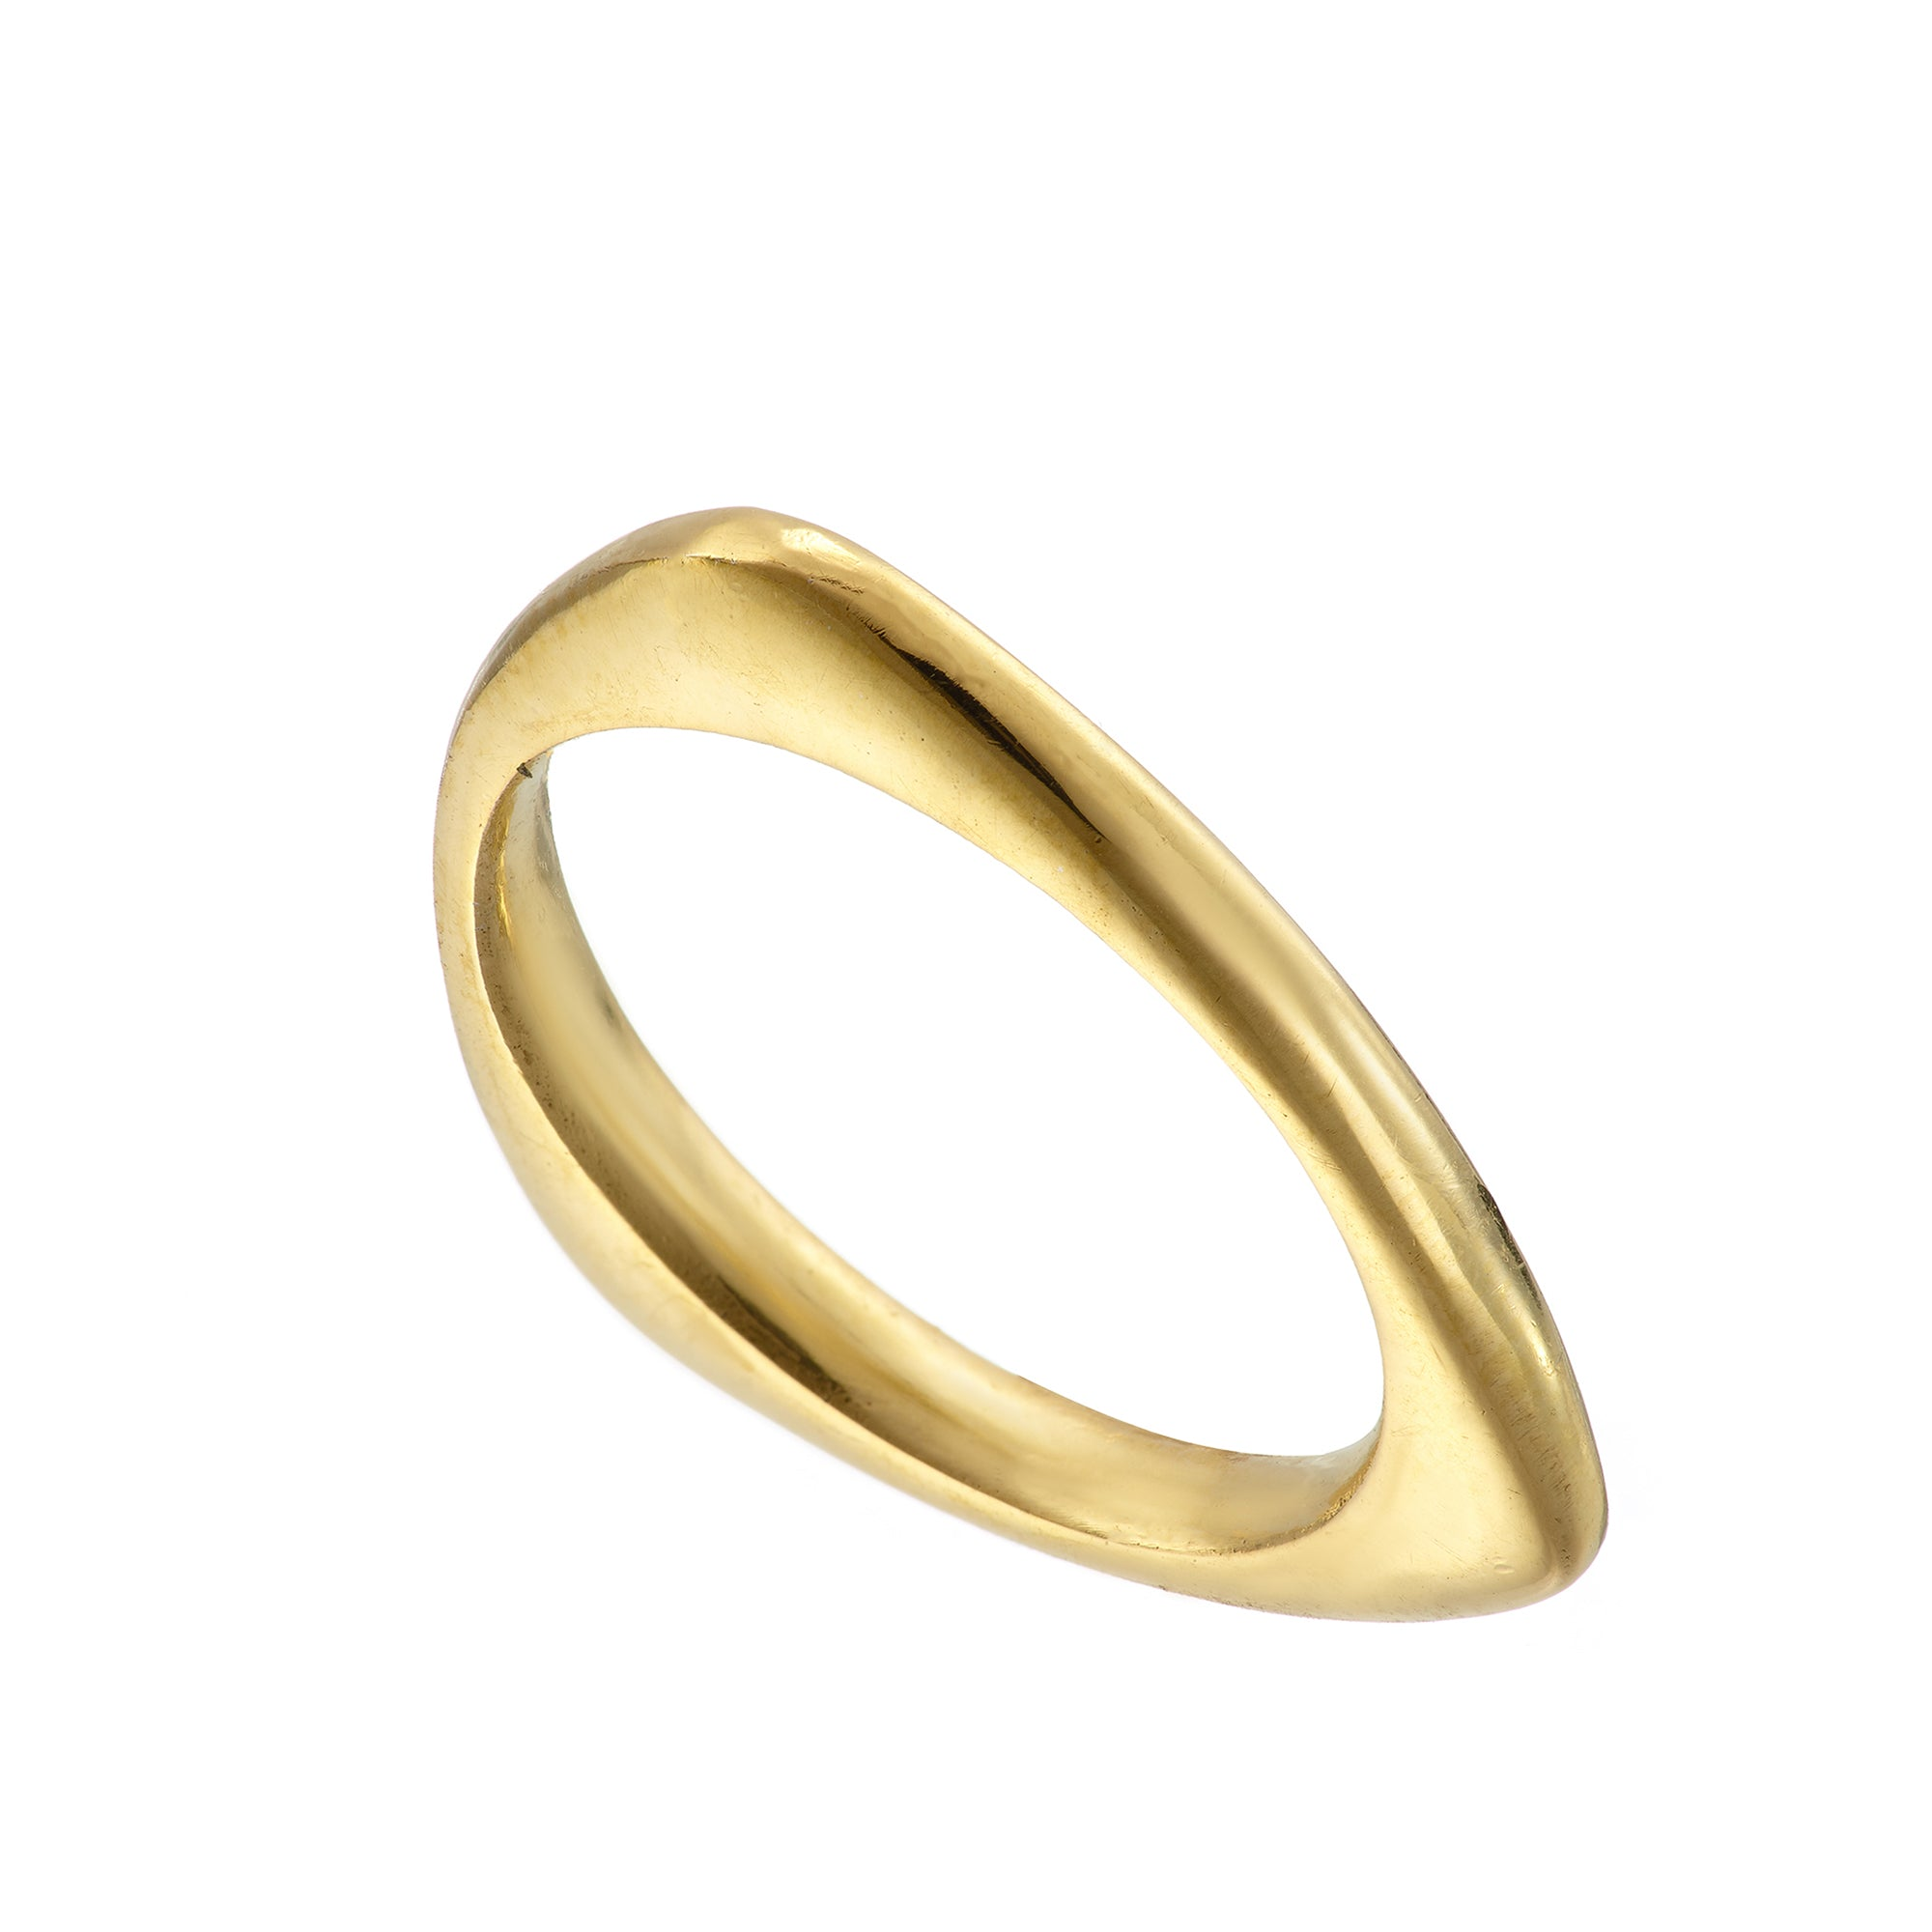 false pink ring wedding and trinity shop crop gold the upscale white scale yellow rings in cartier subsampling product